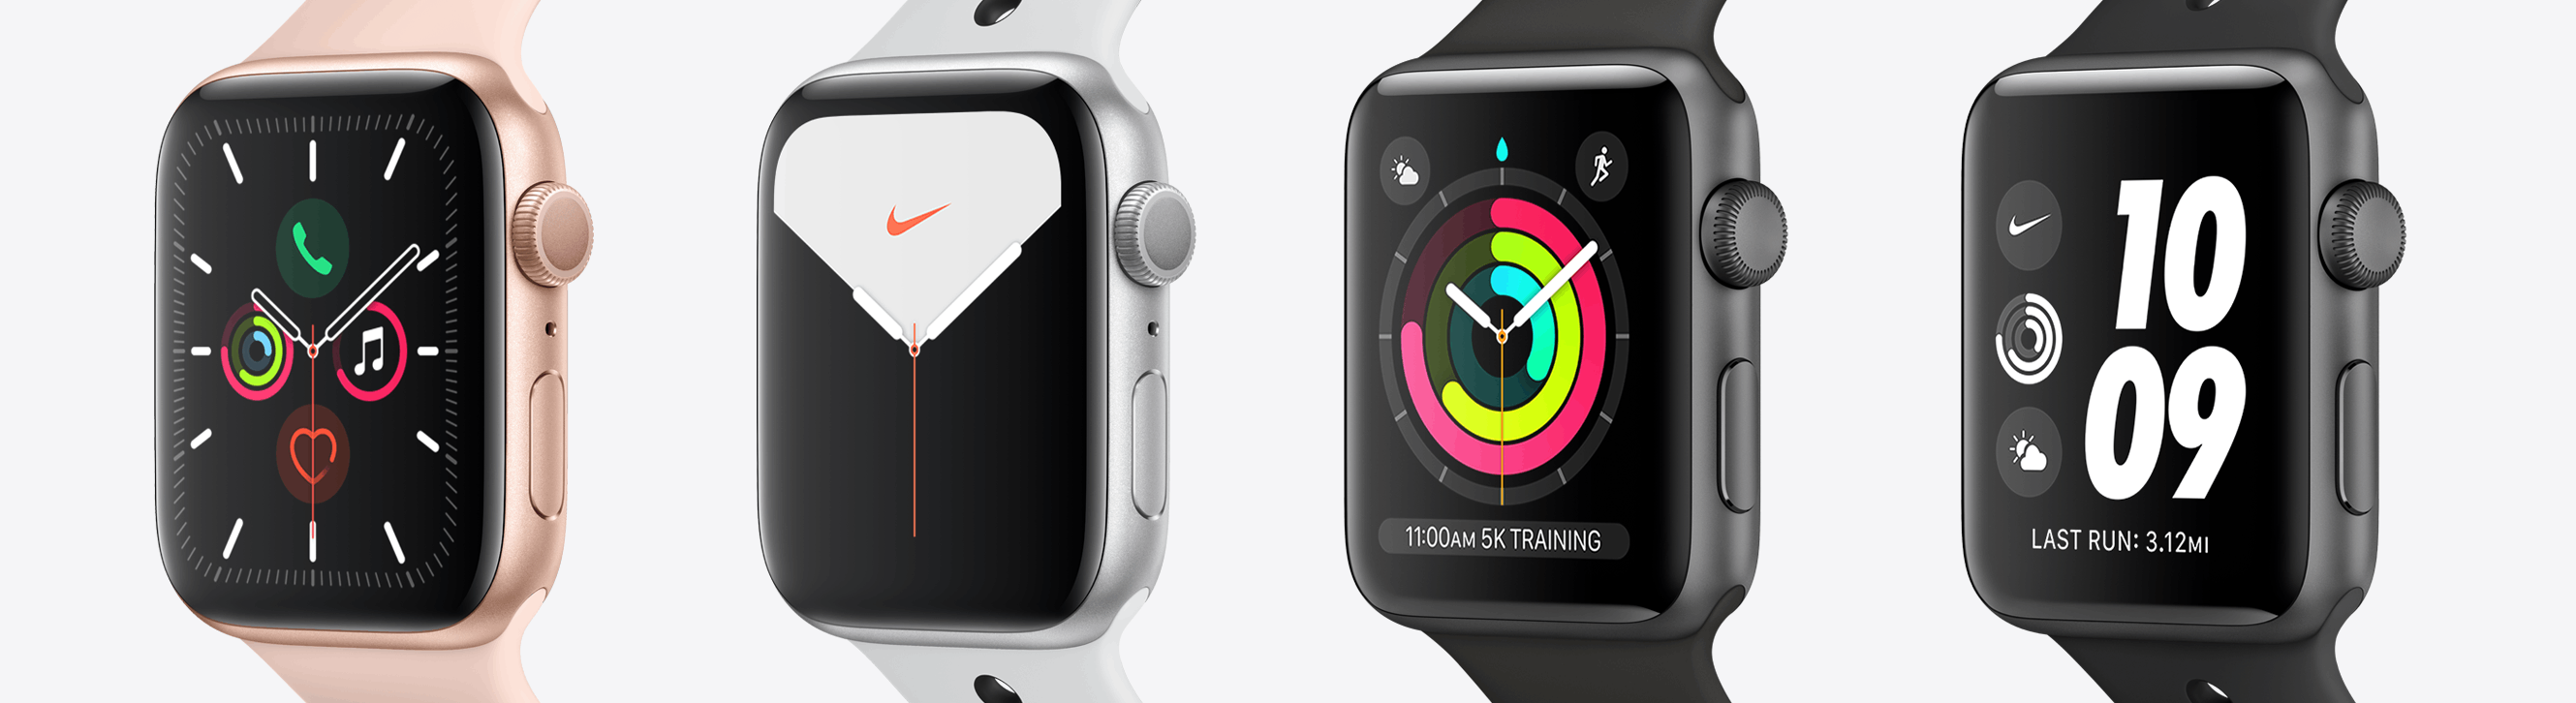 apple watch series display comparisons